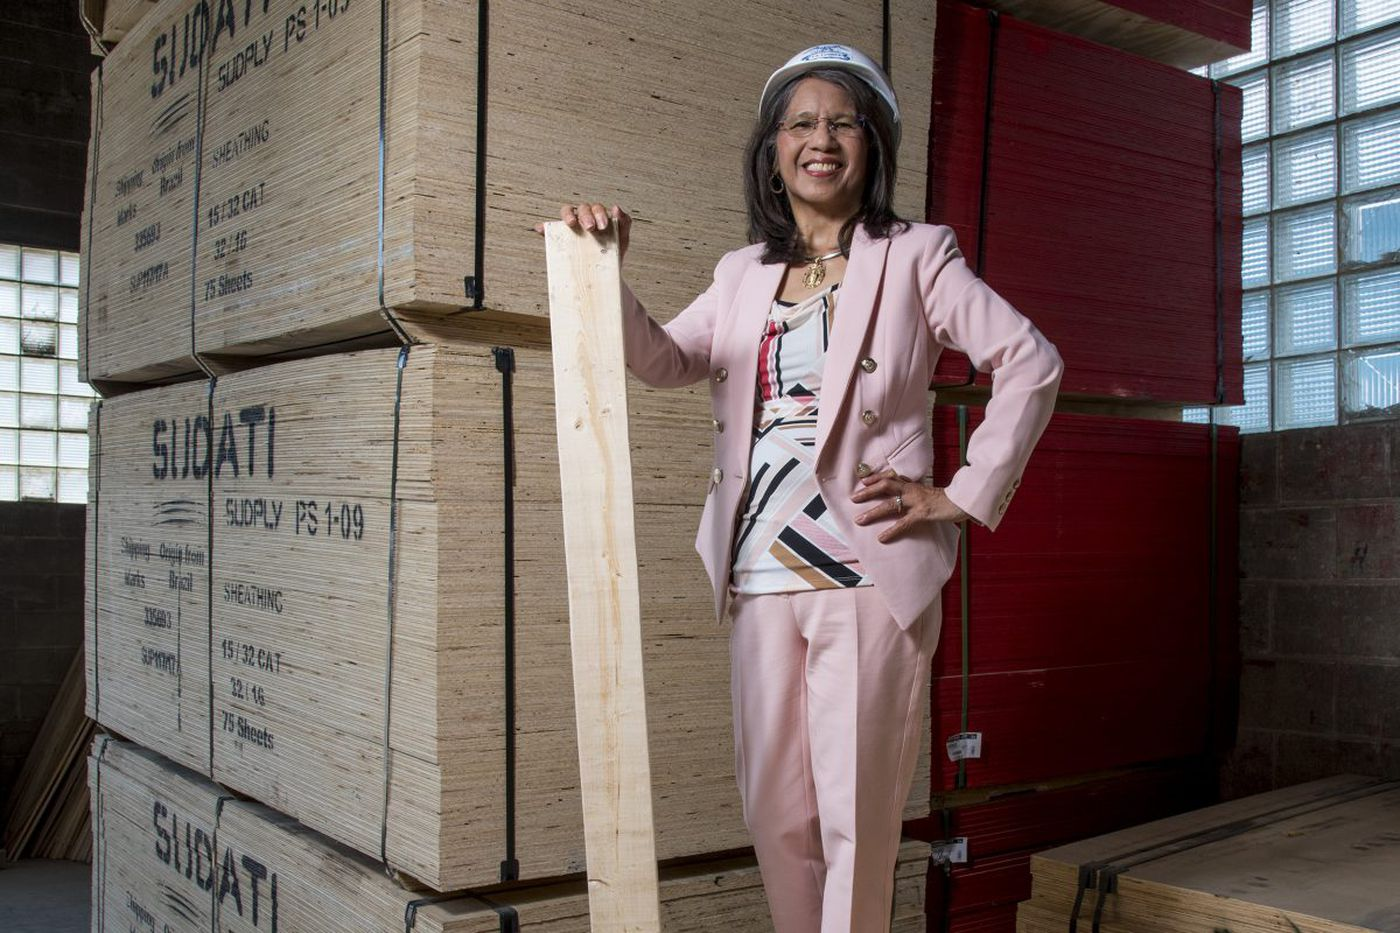 From nanny to lumber firm CEO: Lita Abele's story